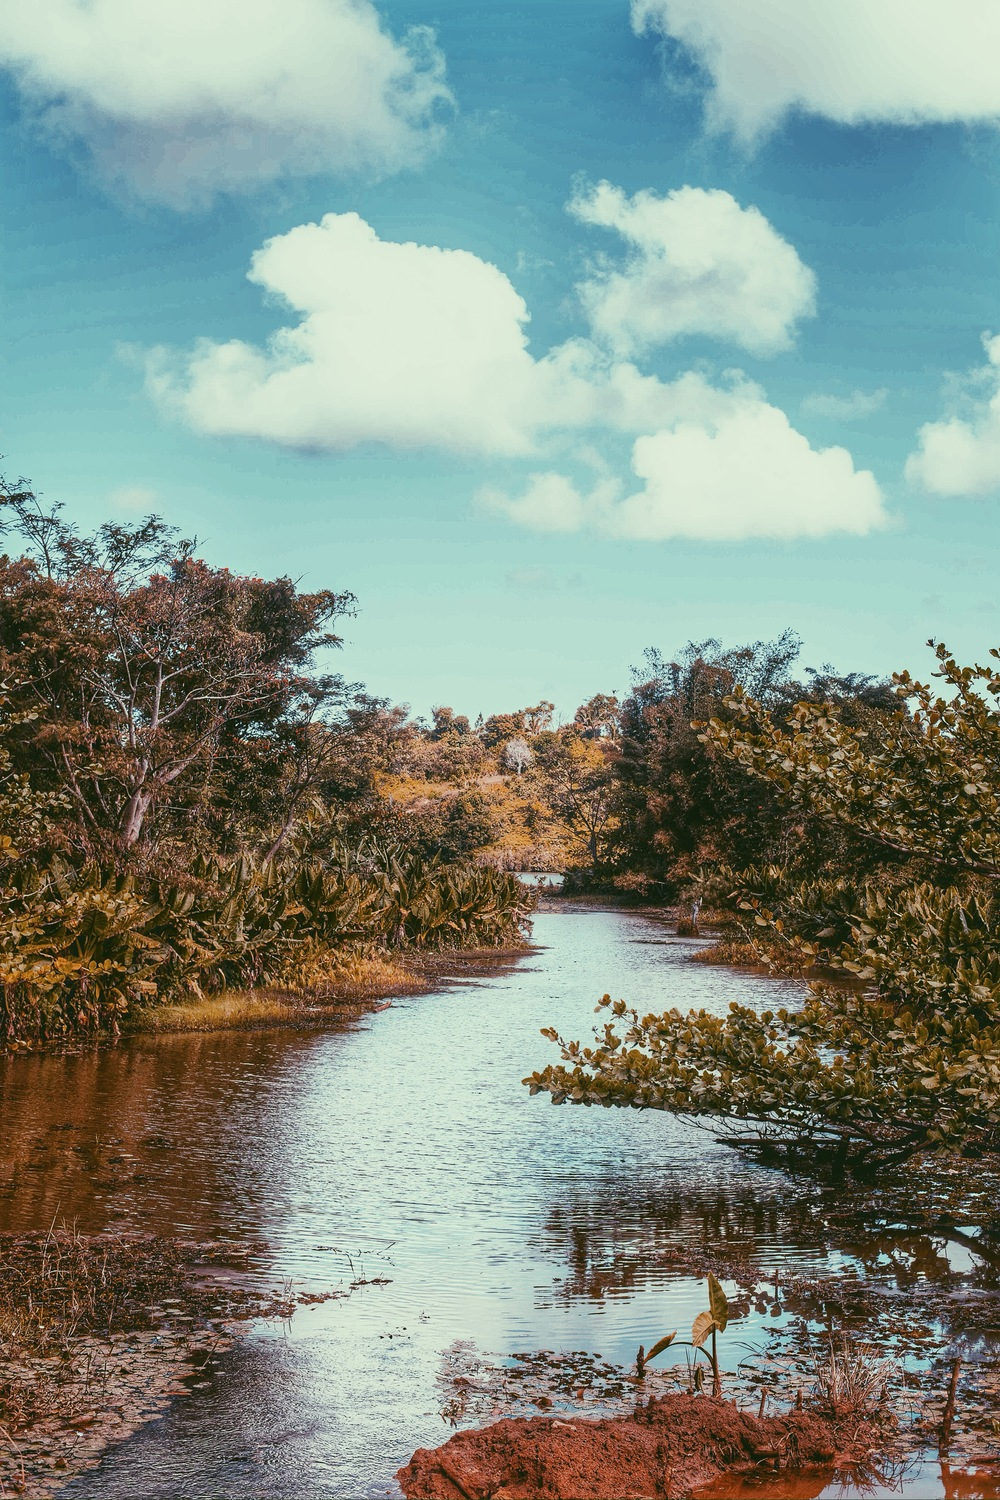 Crossing a bridge, going to a village in Tamatave.